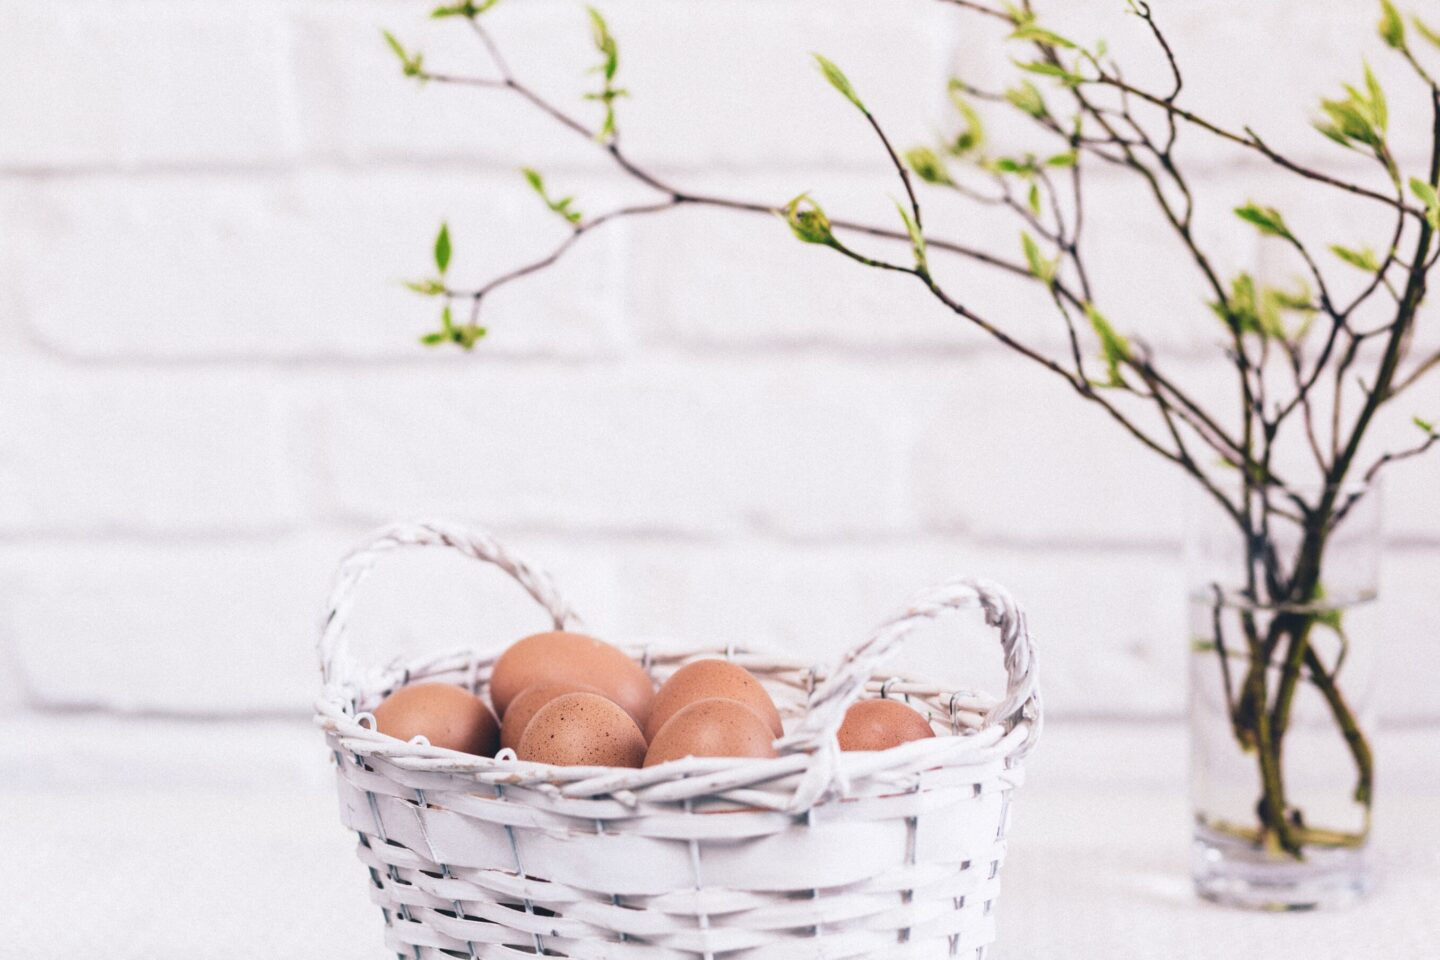 How To Decorate Real Eggs at Easter